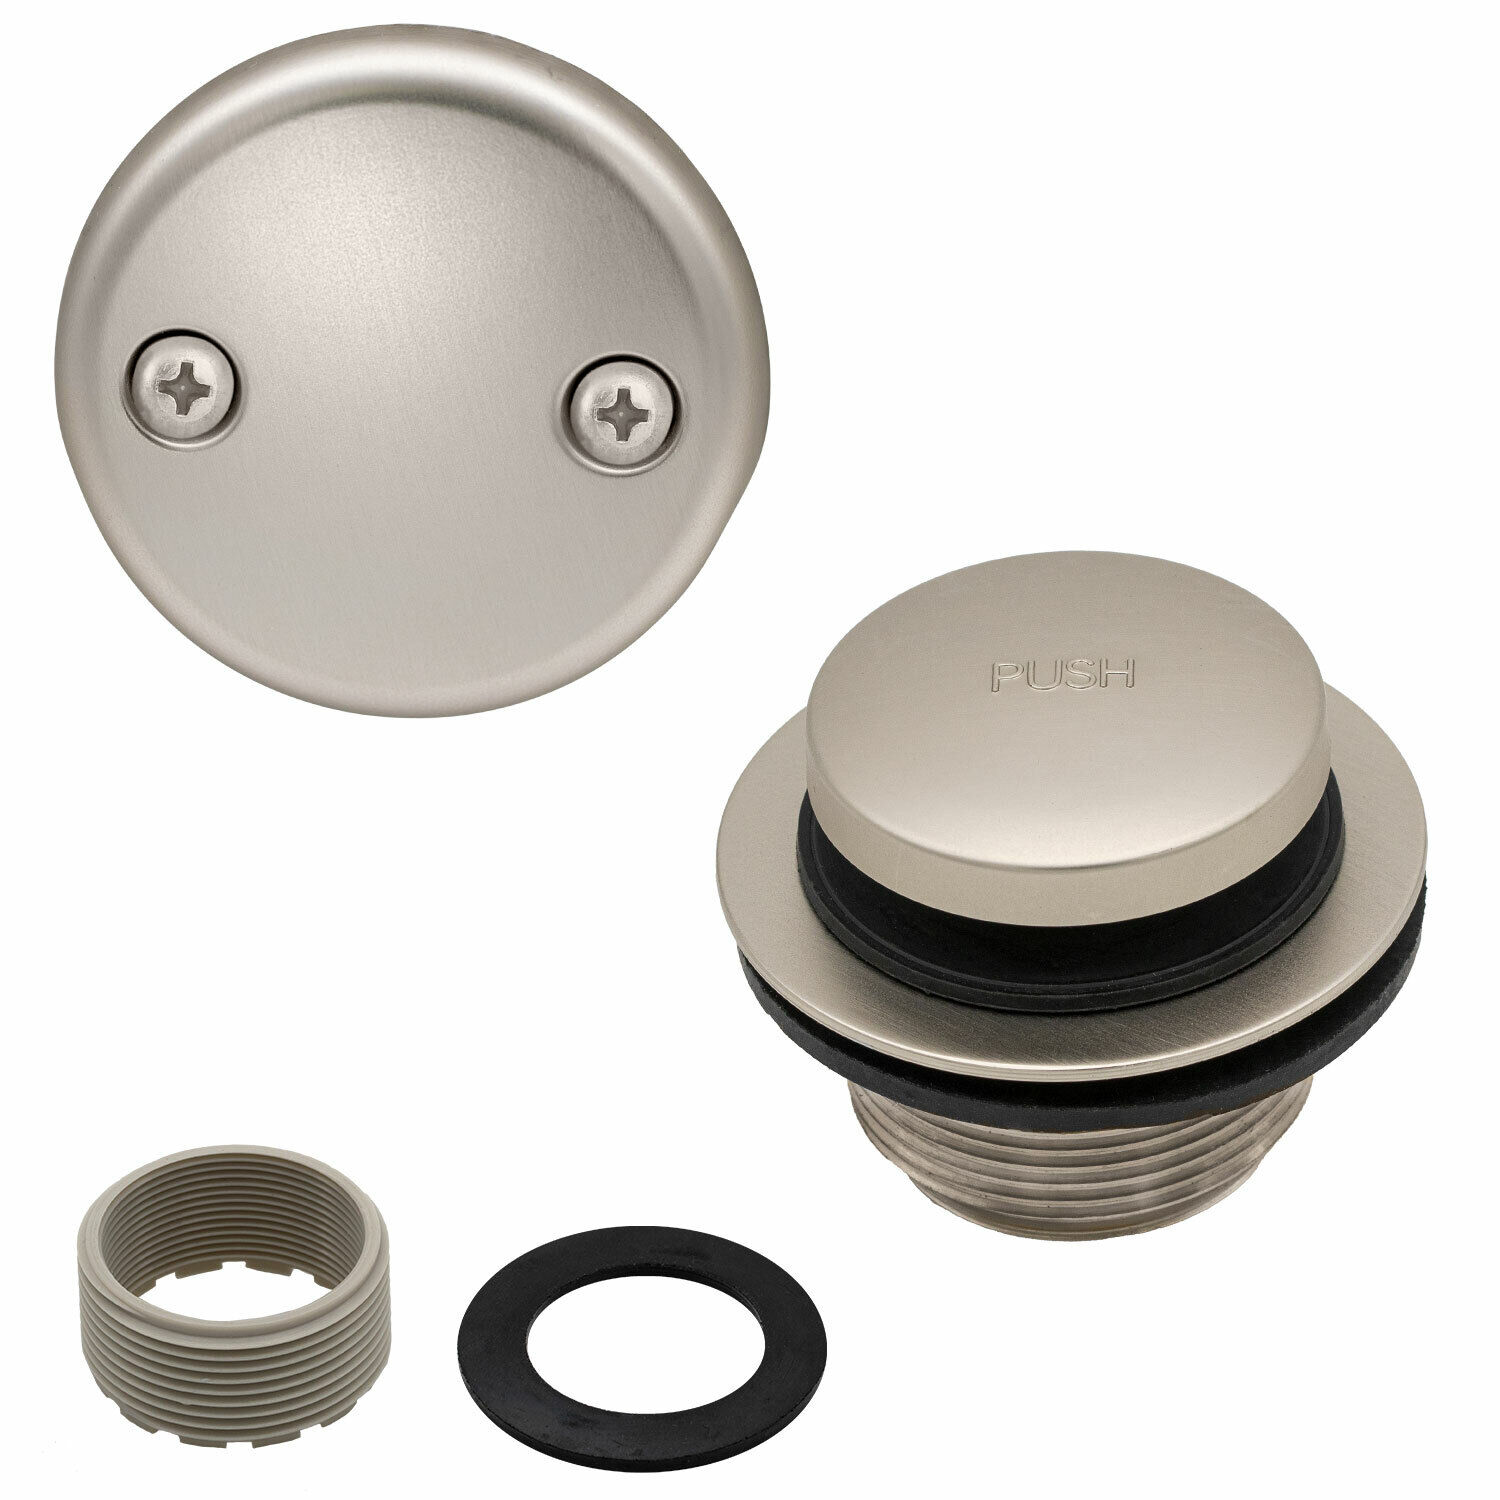 Toe Touch Tub Drain Replacement Bathtub Overflow Cover Kit, Satin Nickel Bath